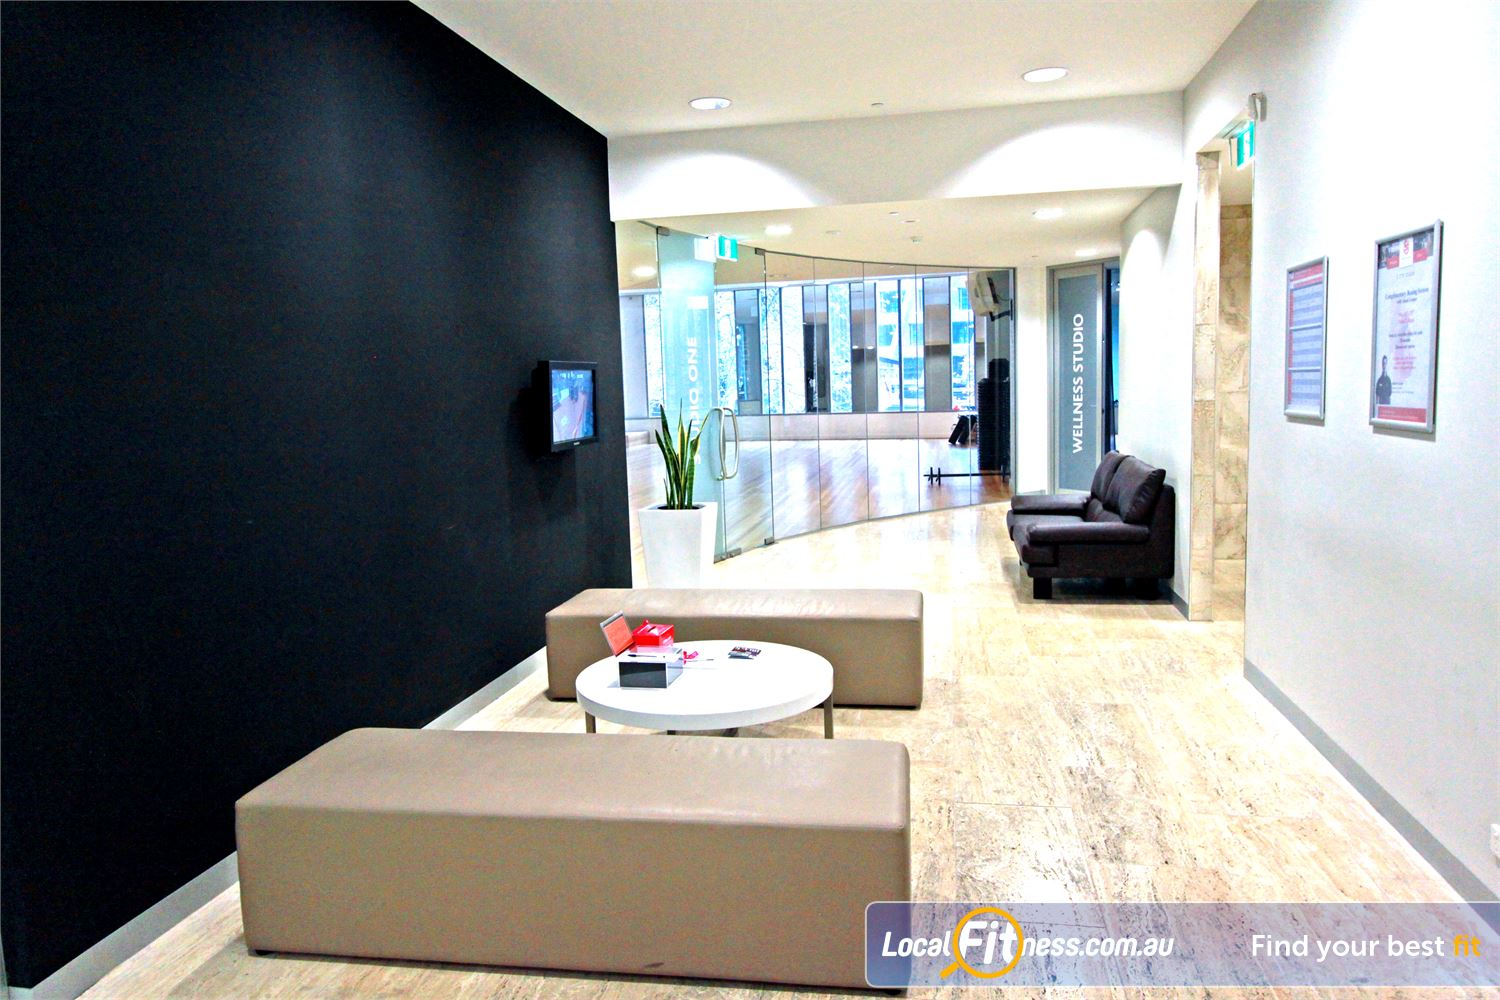 South Pacific Health Clubs Melbourne The stylish and comfortable members lounge.